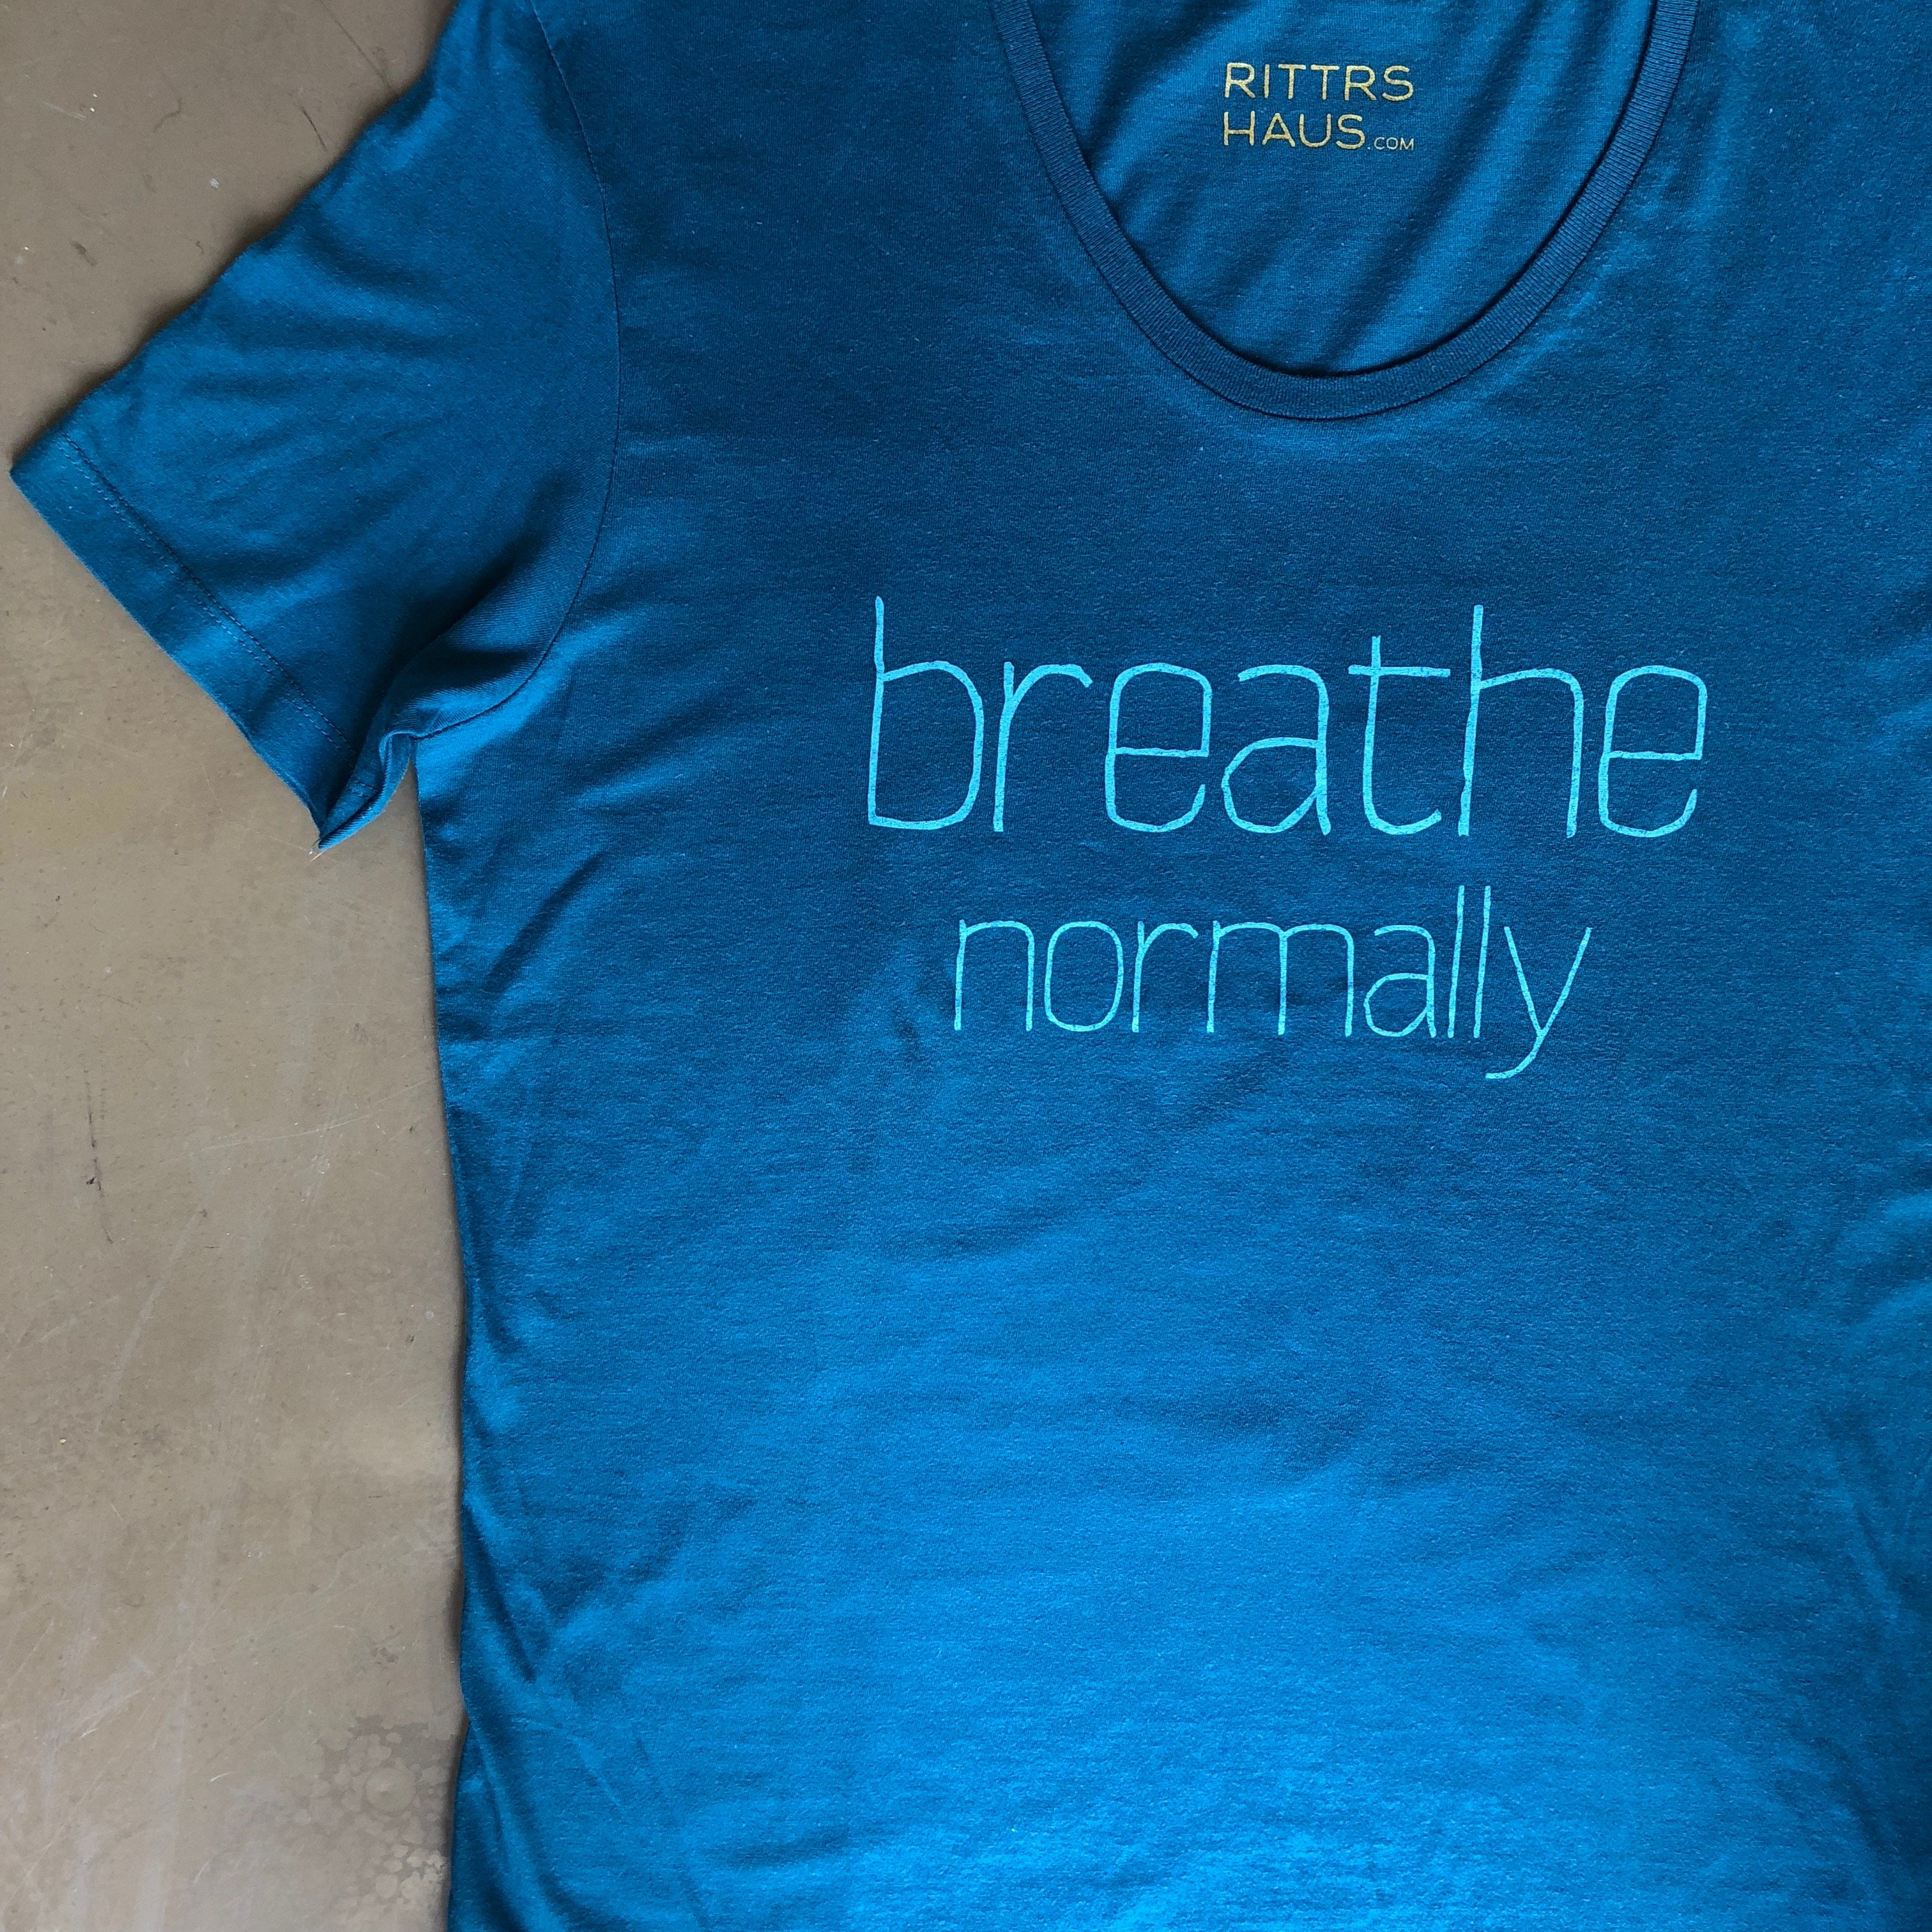 Unisex T-SHIRT, Breathe Normally from RITTRSHAUS